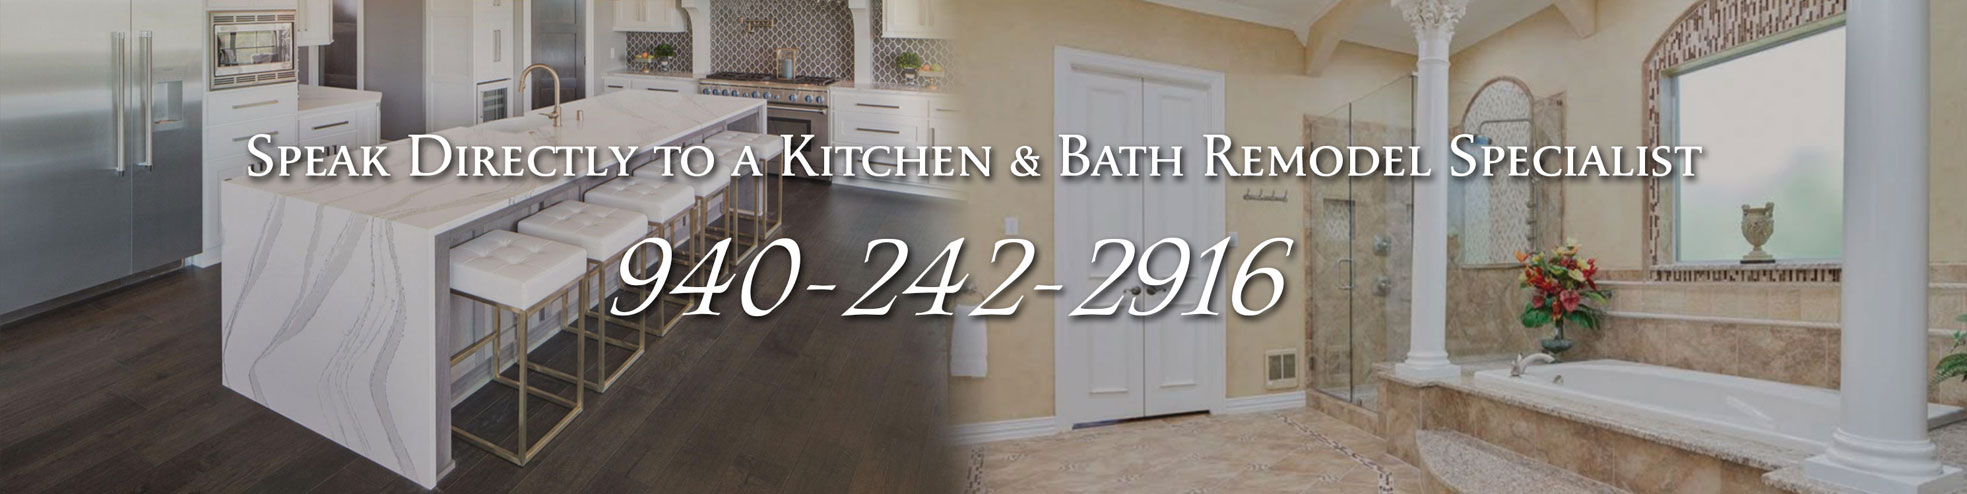 Speak directly to a kitchen & bath remodel specialist now! 940-242-2916